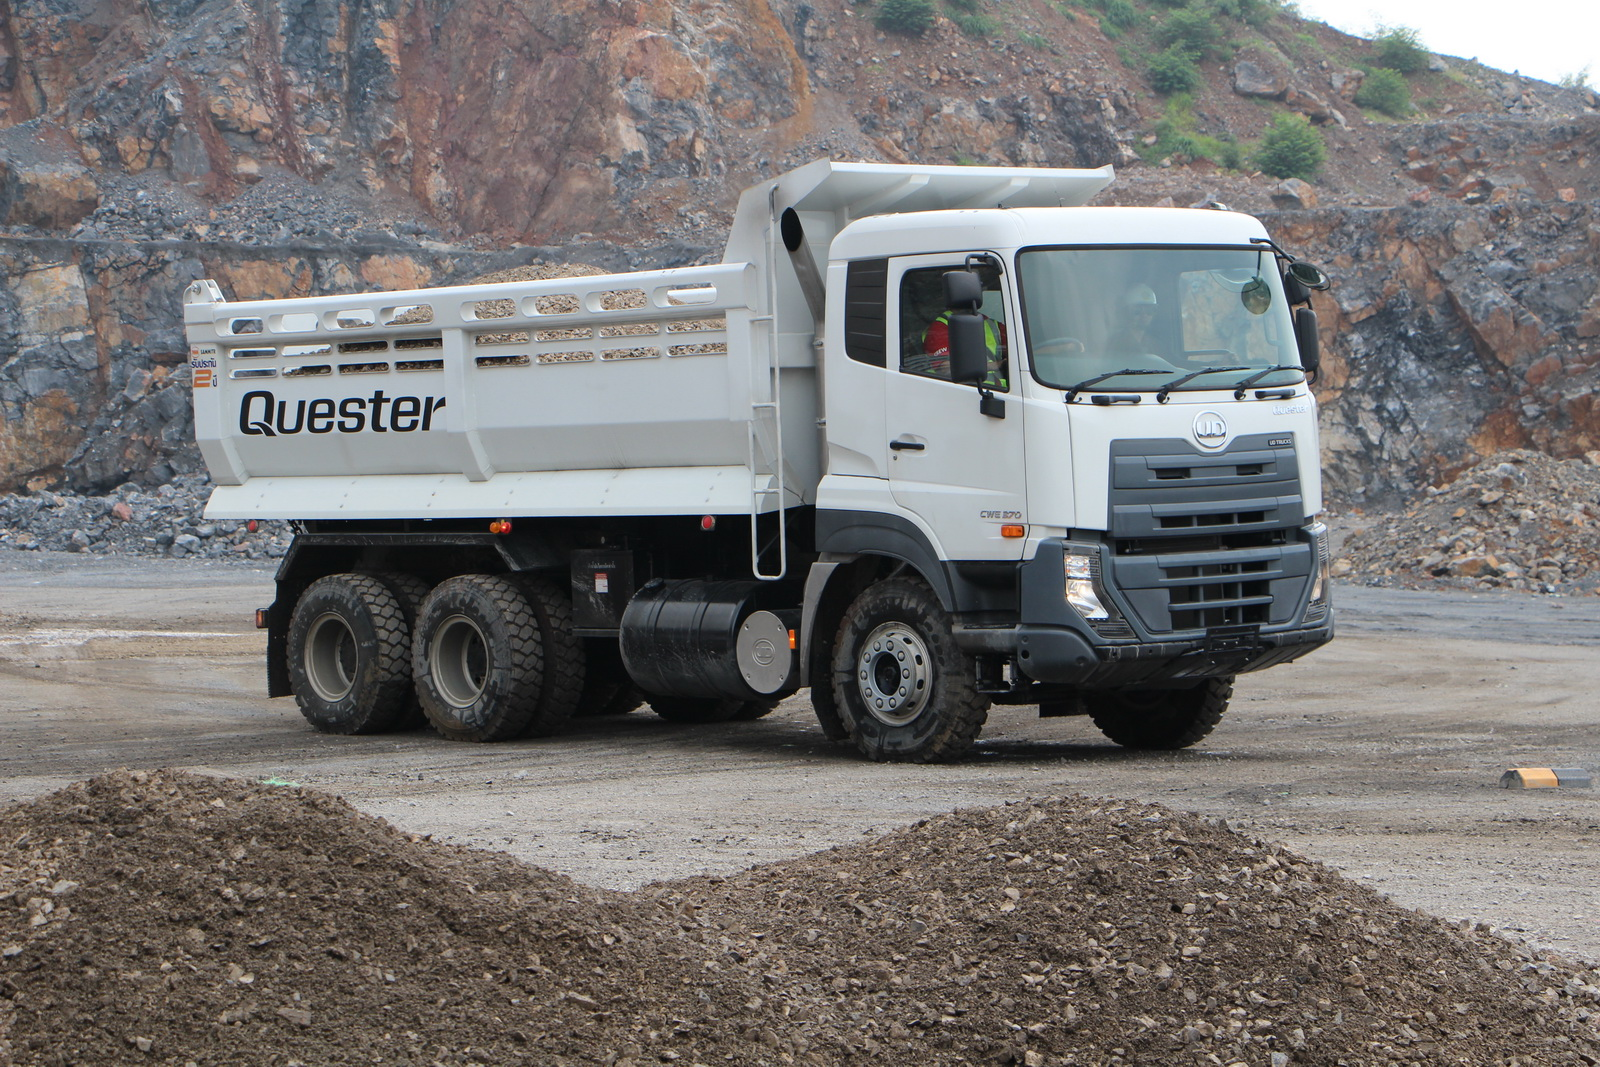 ud_truck_quester_22